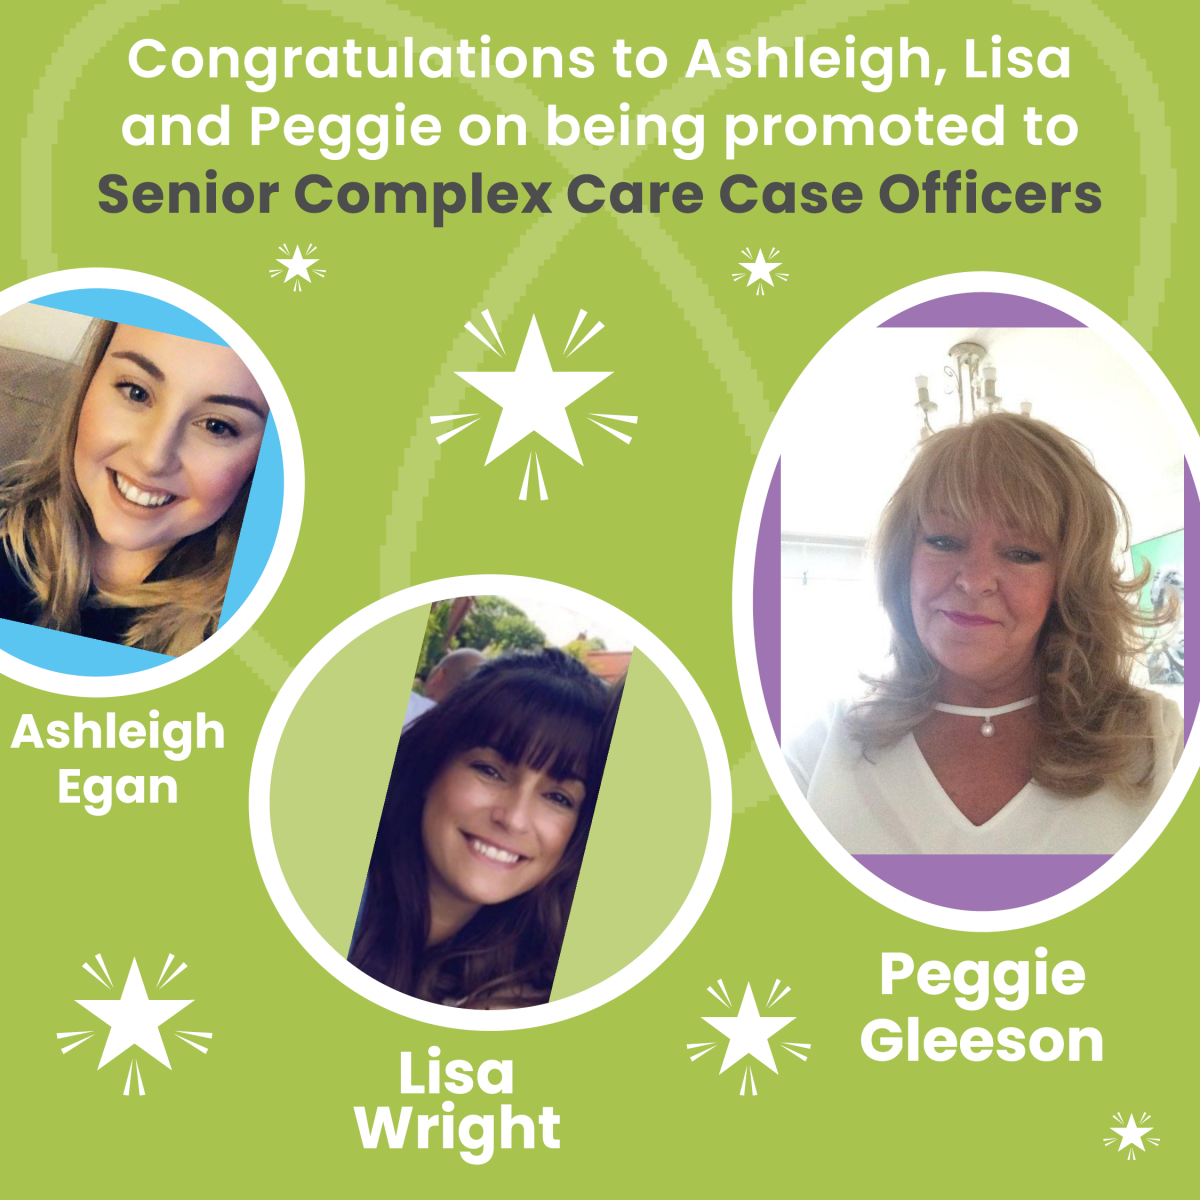 Congratulations to Ashleigh, Lisa and Peggie on being promoted to Senior Complex Care Case Officers!